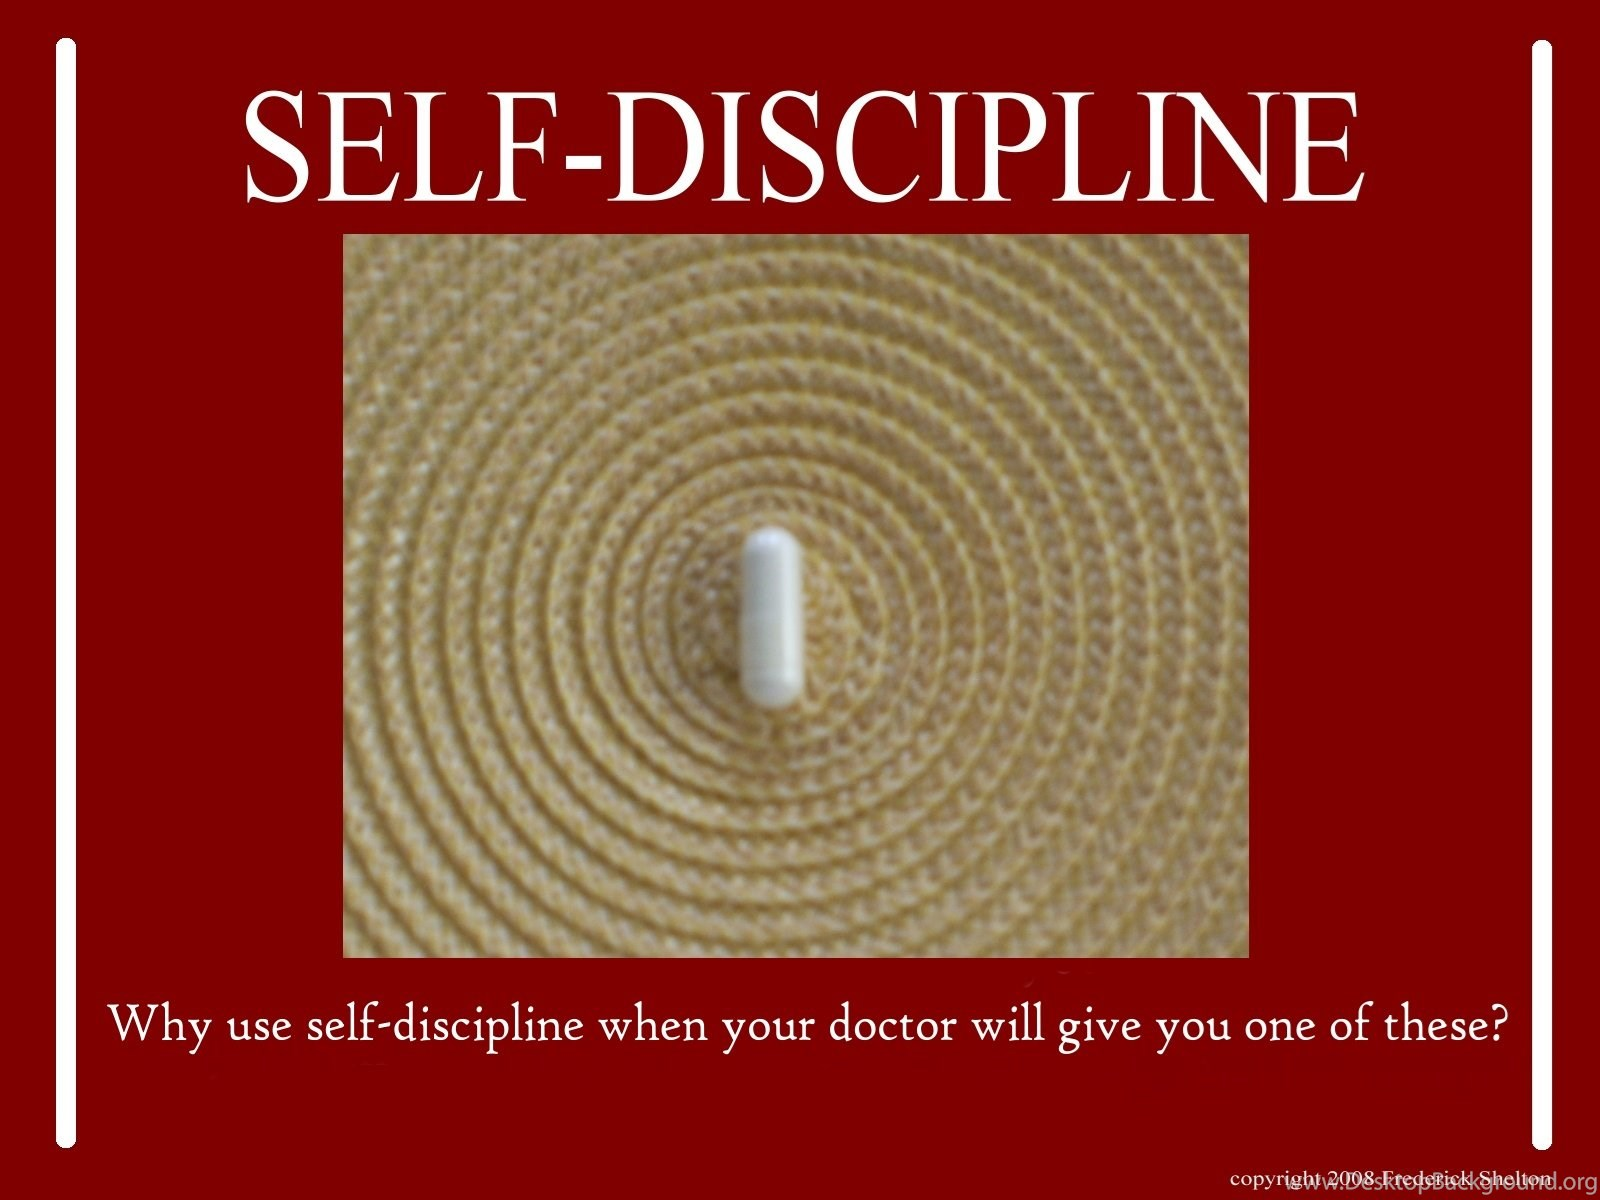 justify the need and role of discipline Unit 4 - understanding discipline m1/d1 teri moody situation in this prezi i will be working on m1 and d1 this is where you have to justify the need for and the role of discipline in the uniformed public services i will also have to evaluate the impact of discipline in the uniformed public services.